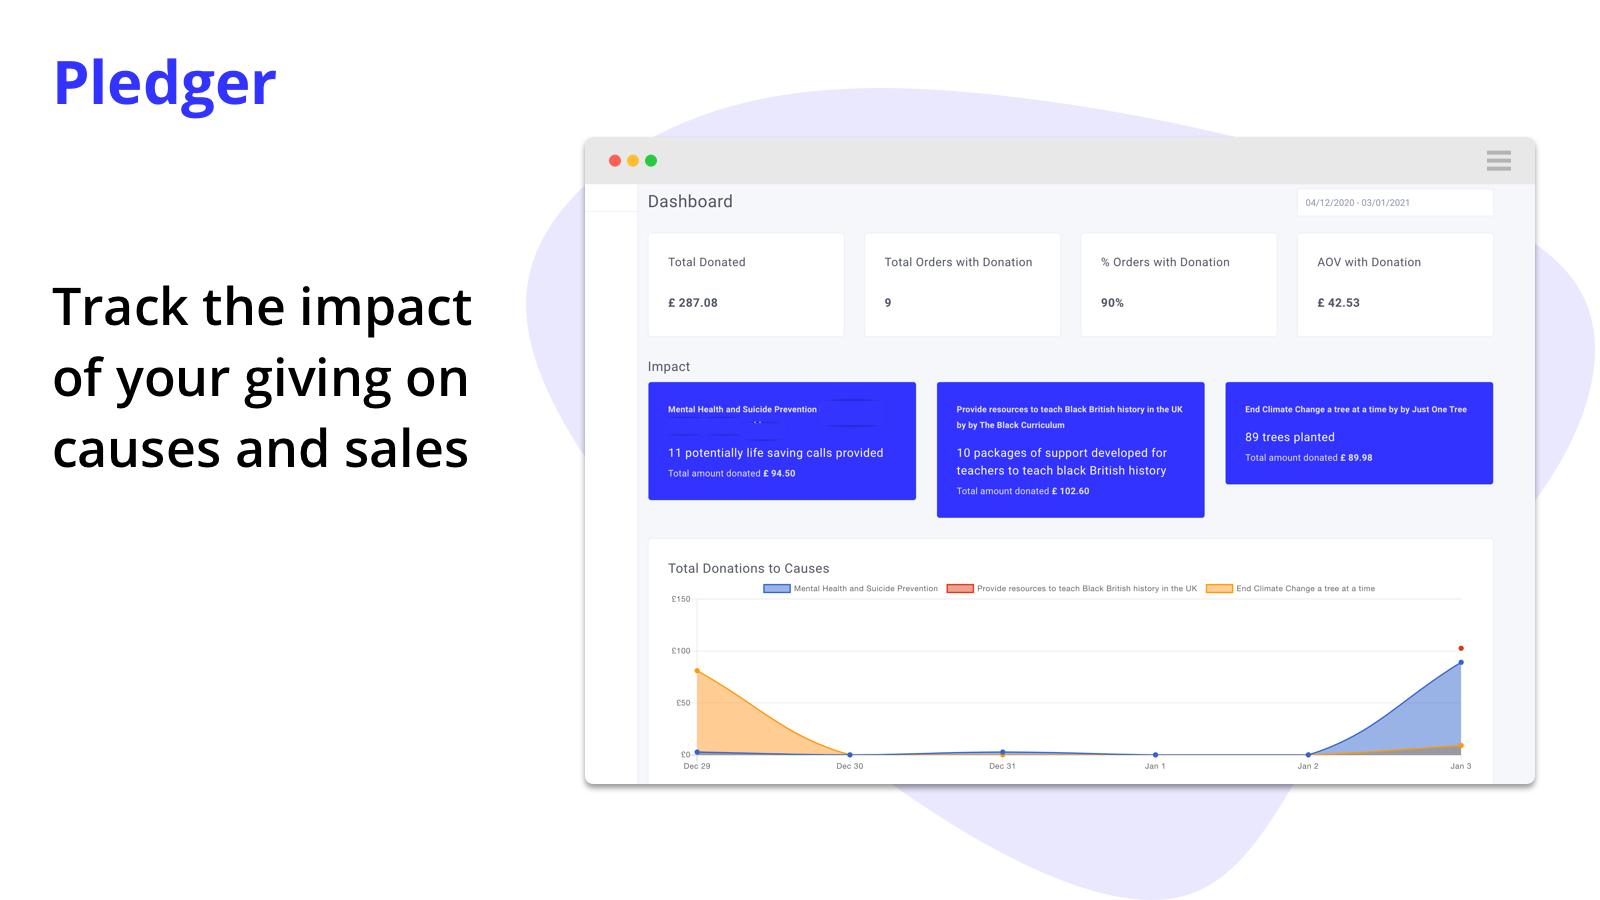 Track the impact of your giving on causes and sales